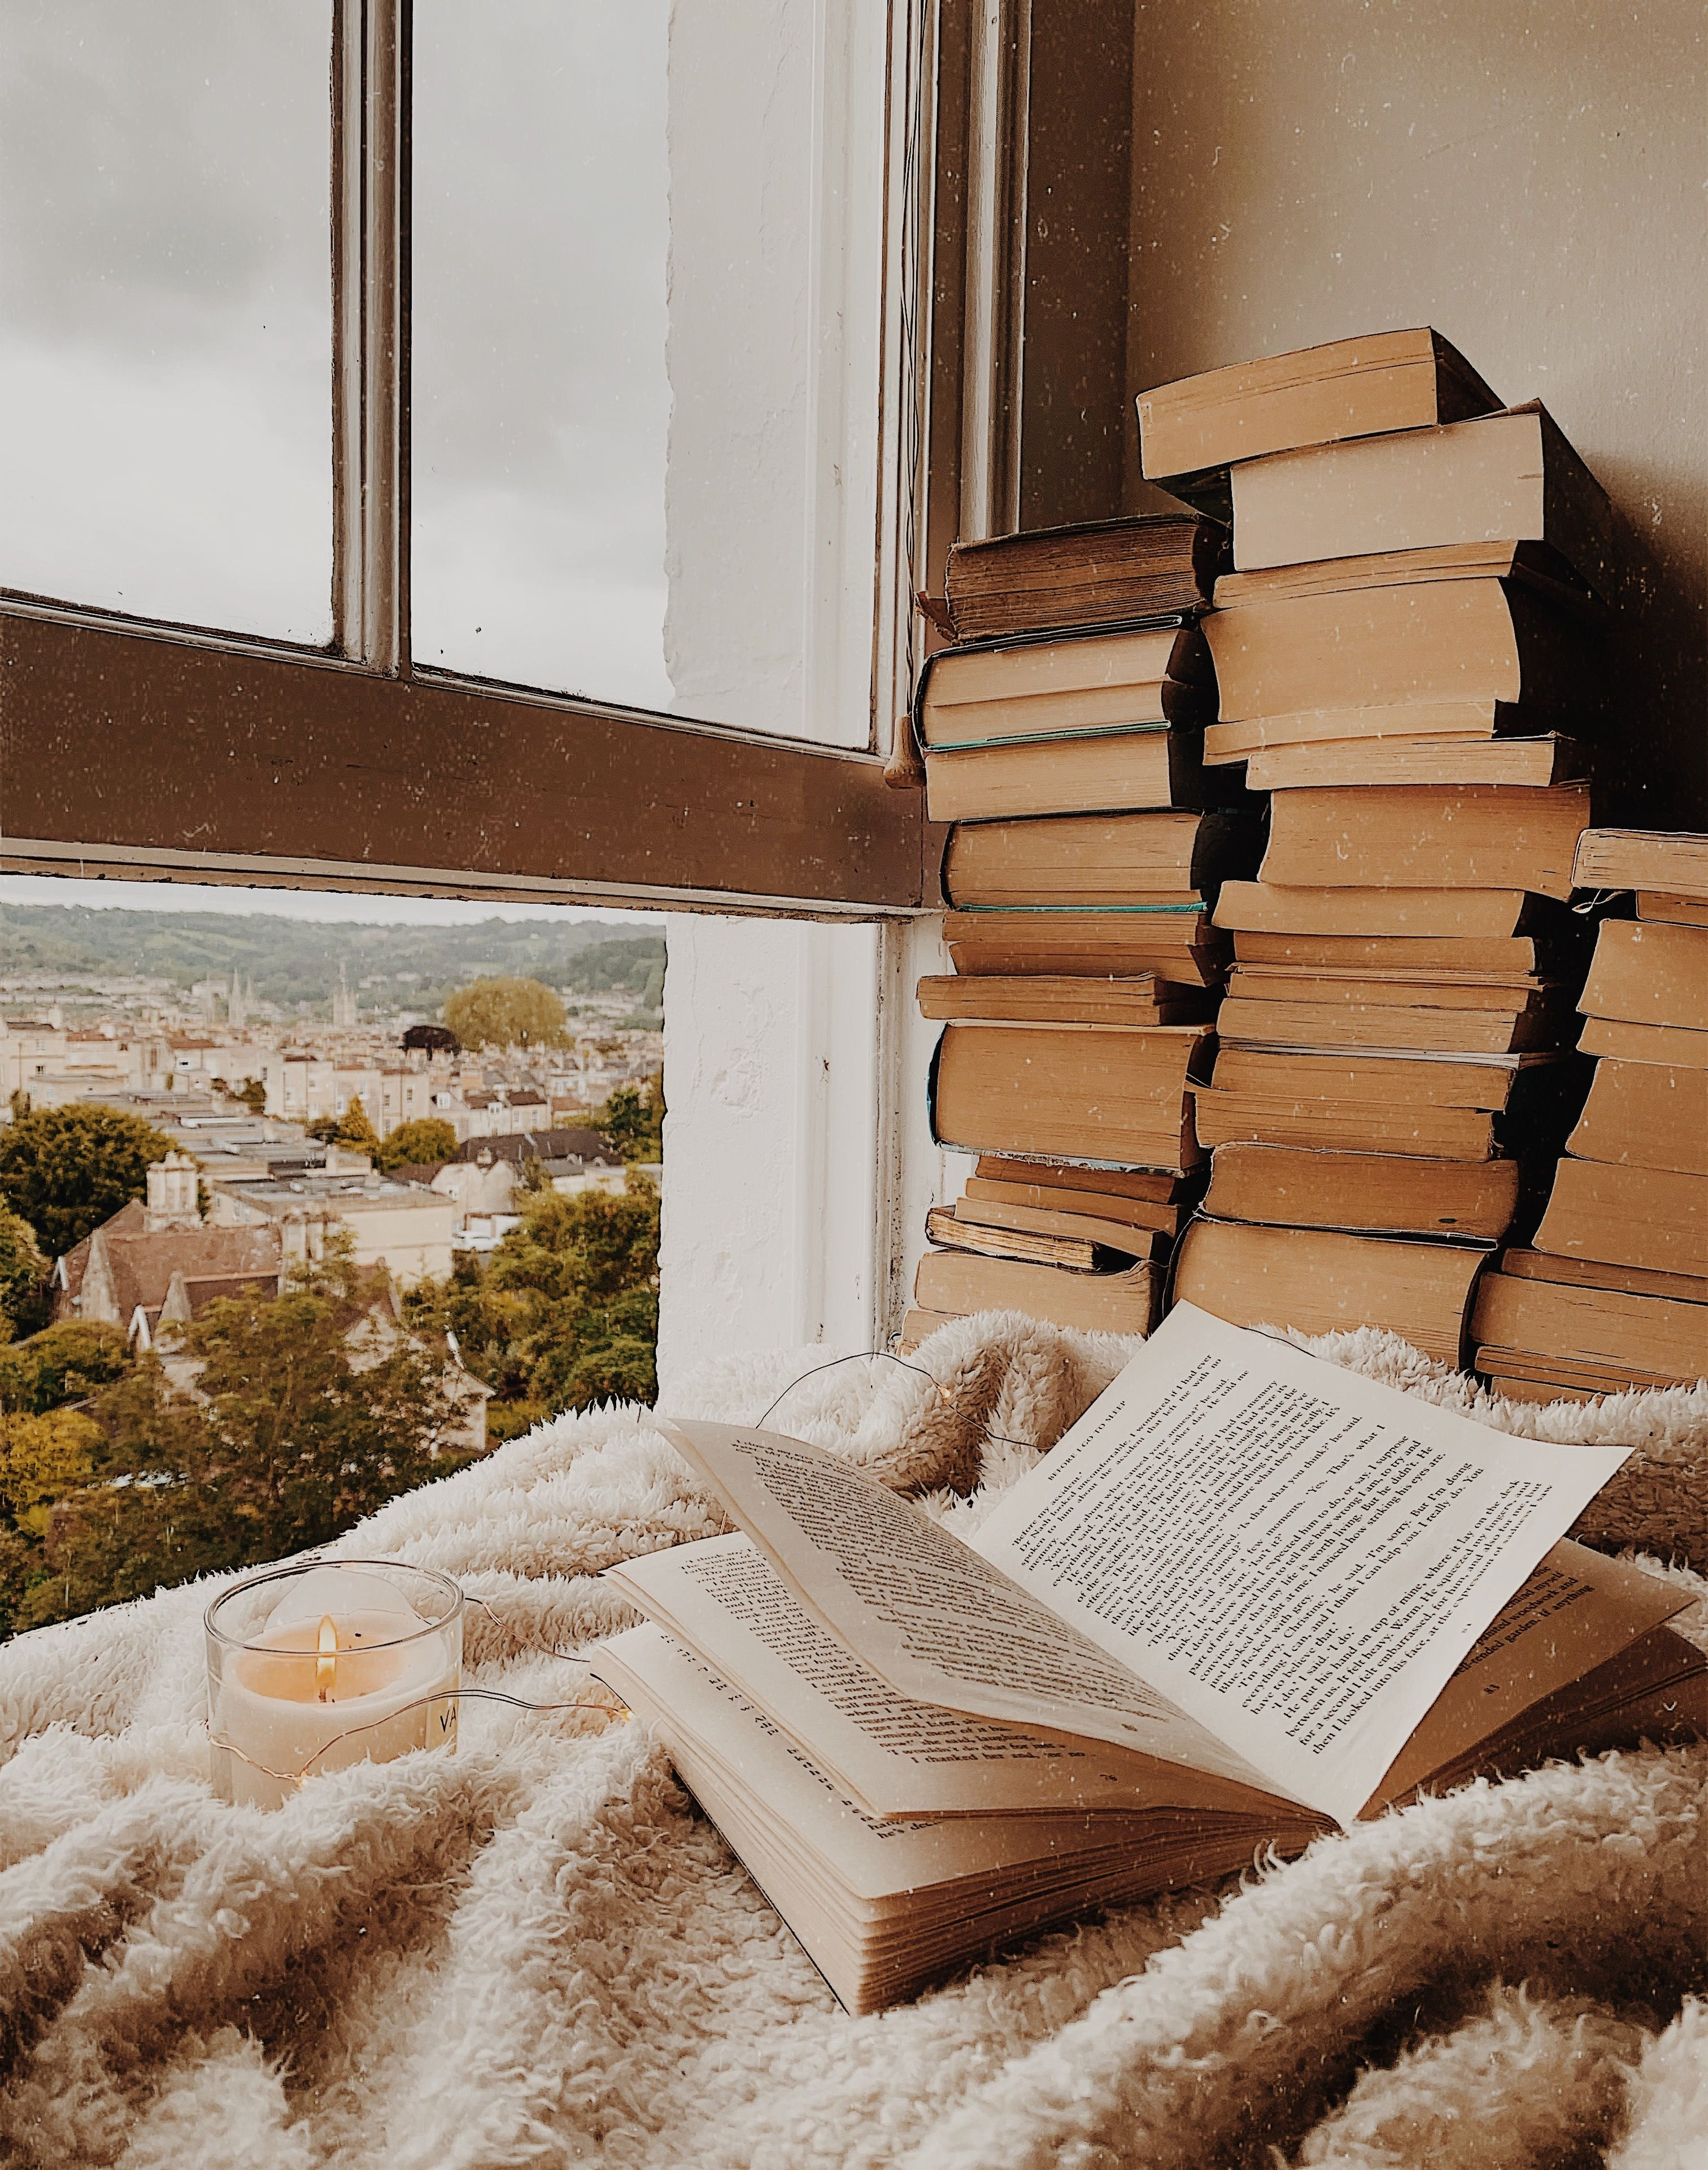 Book A View In 2020 Cozy Aesthetic Book Aesthetic Aesthetic Wallpapers